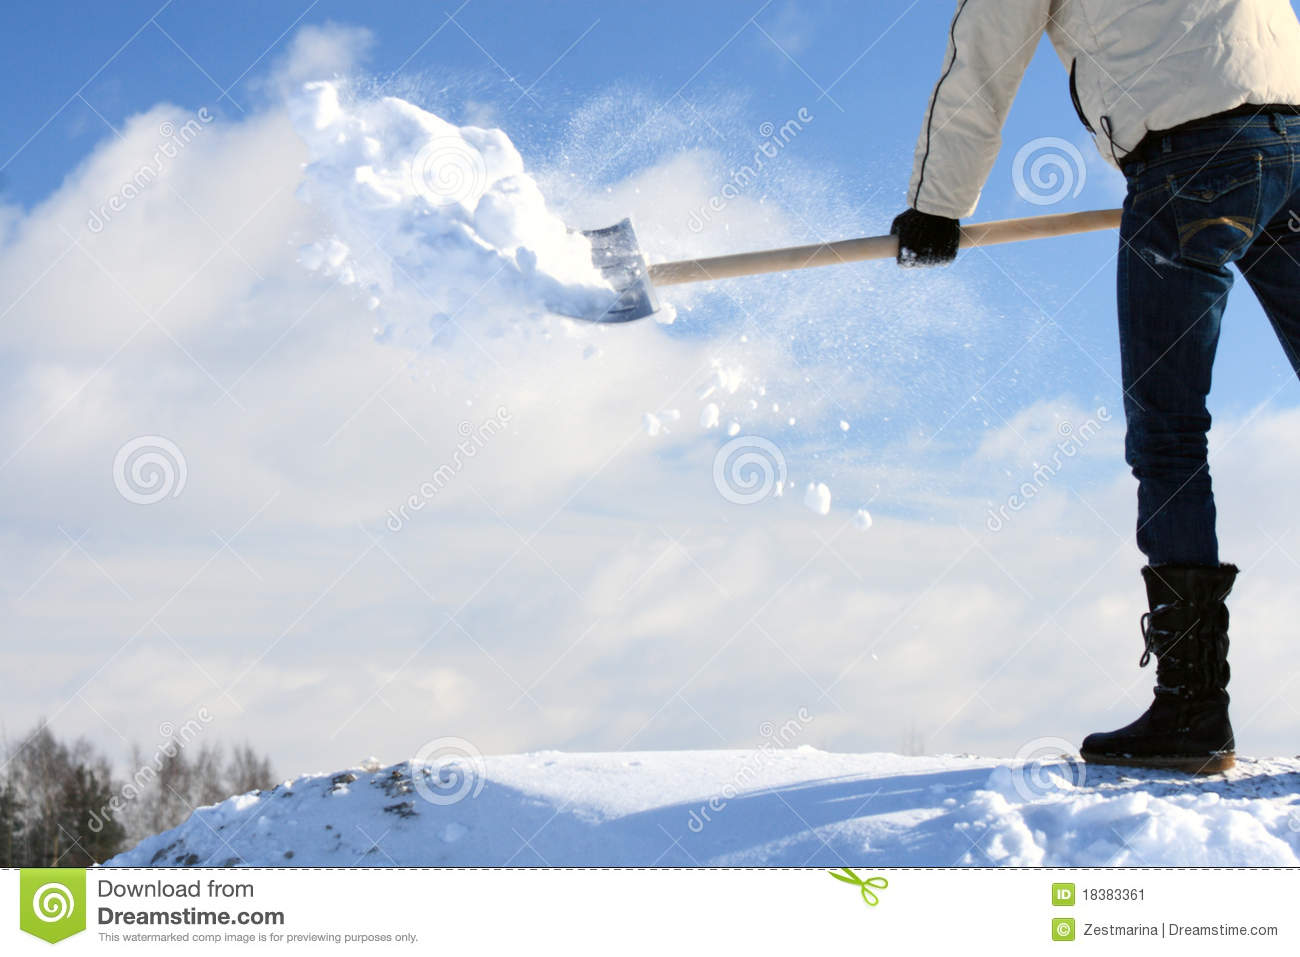 how to fix a cracked snow shovel